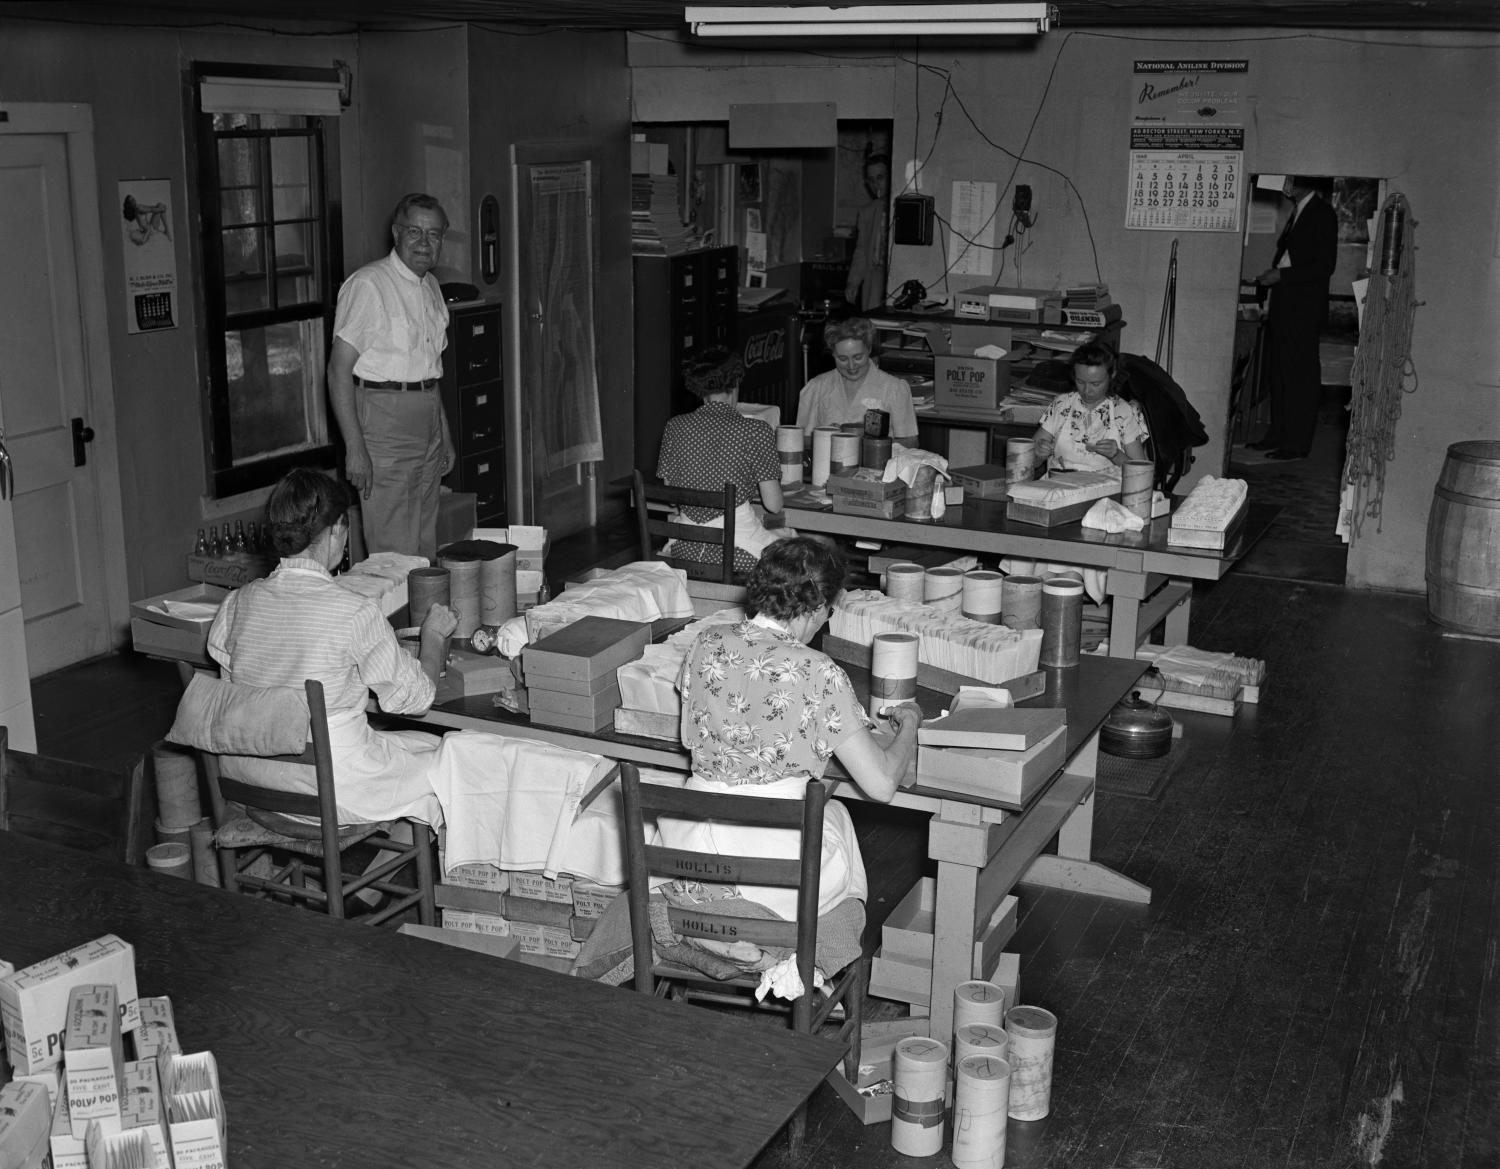 Black and white photo of five white women worked at two tables in a room. They have boxes and other materials on the tables and are seated looking down. A white man stands to the side of the tables and looks at the camera.